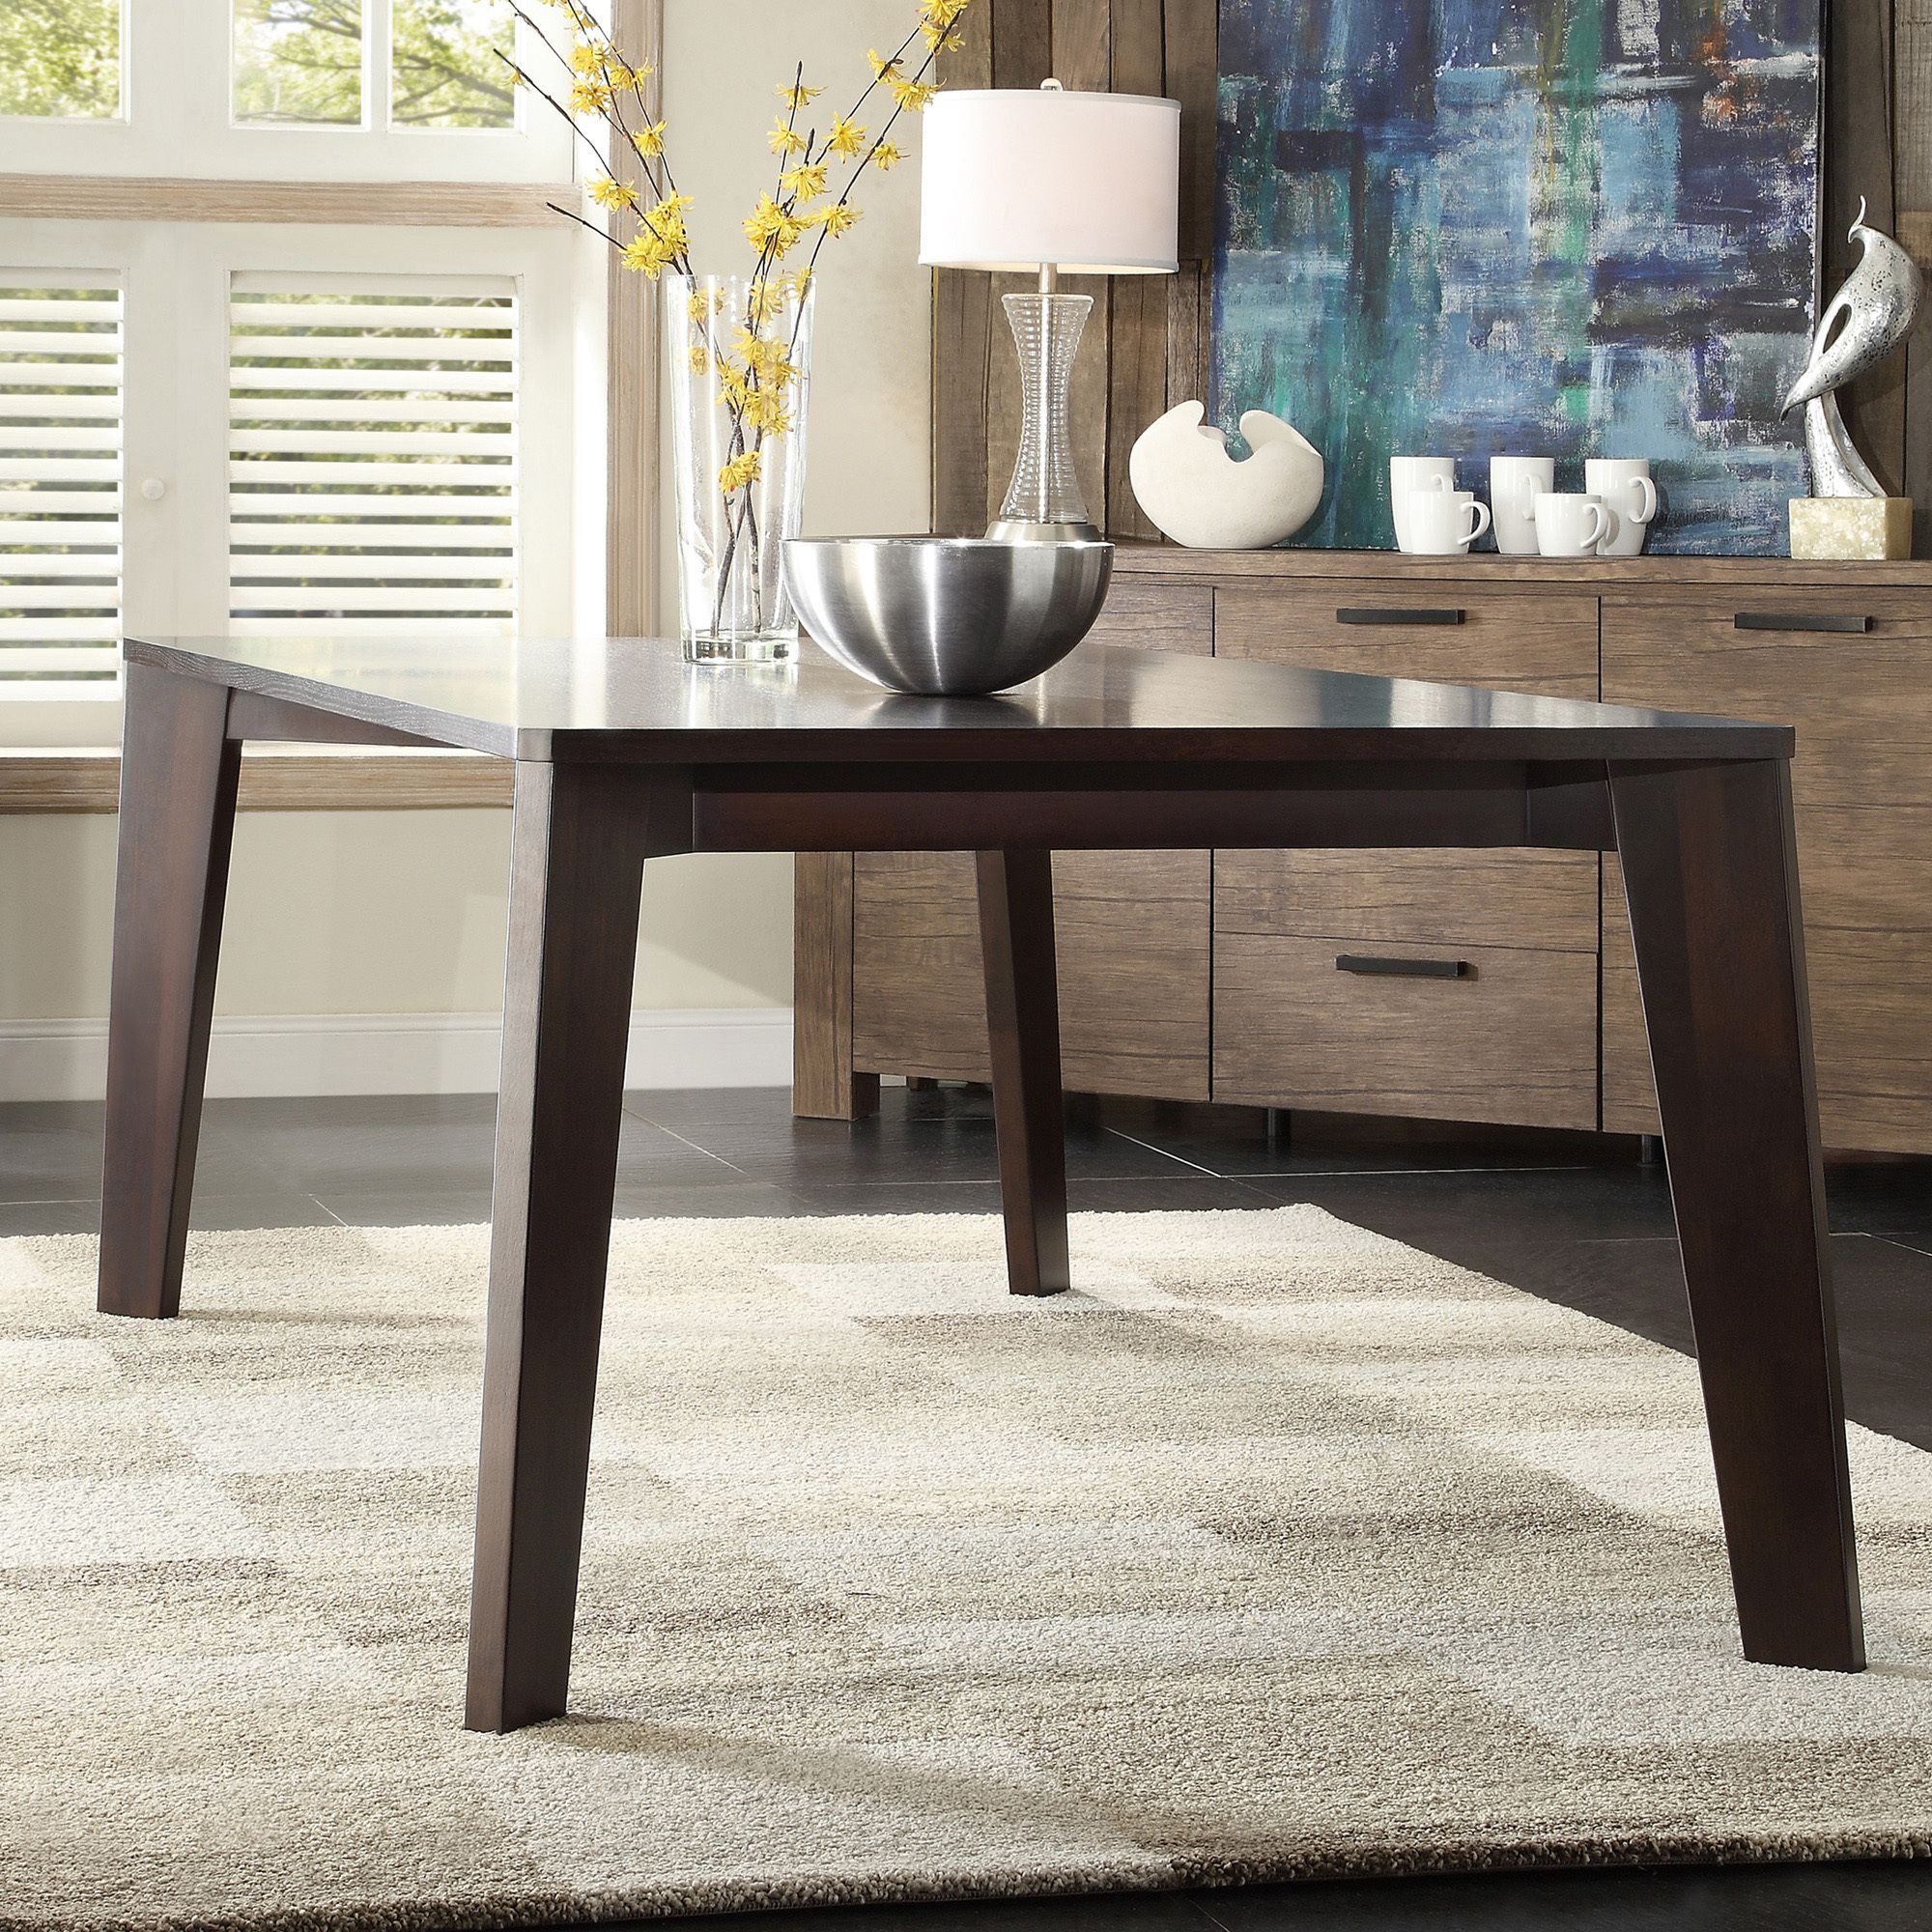 INSPIRE Q Sasha Mid-century Modern Brown Angled Leg Dining Table -  Overstock Shopping -